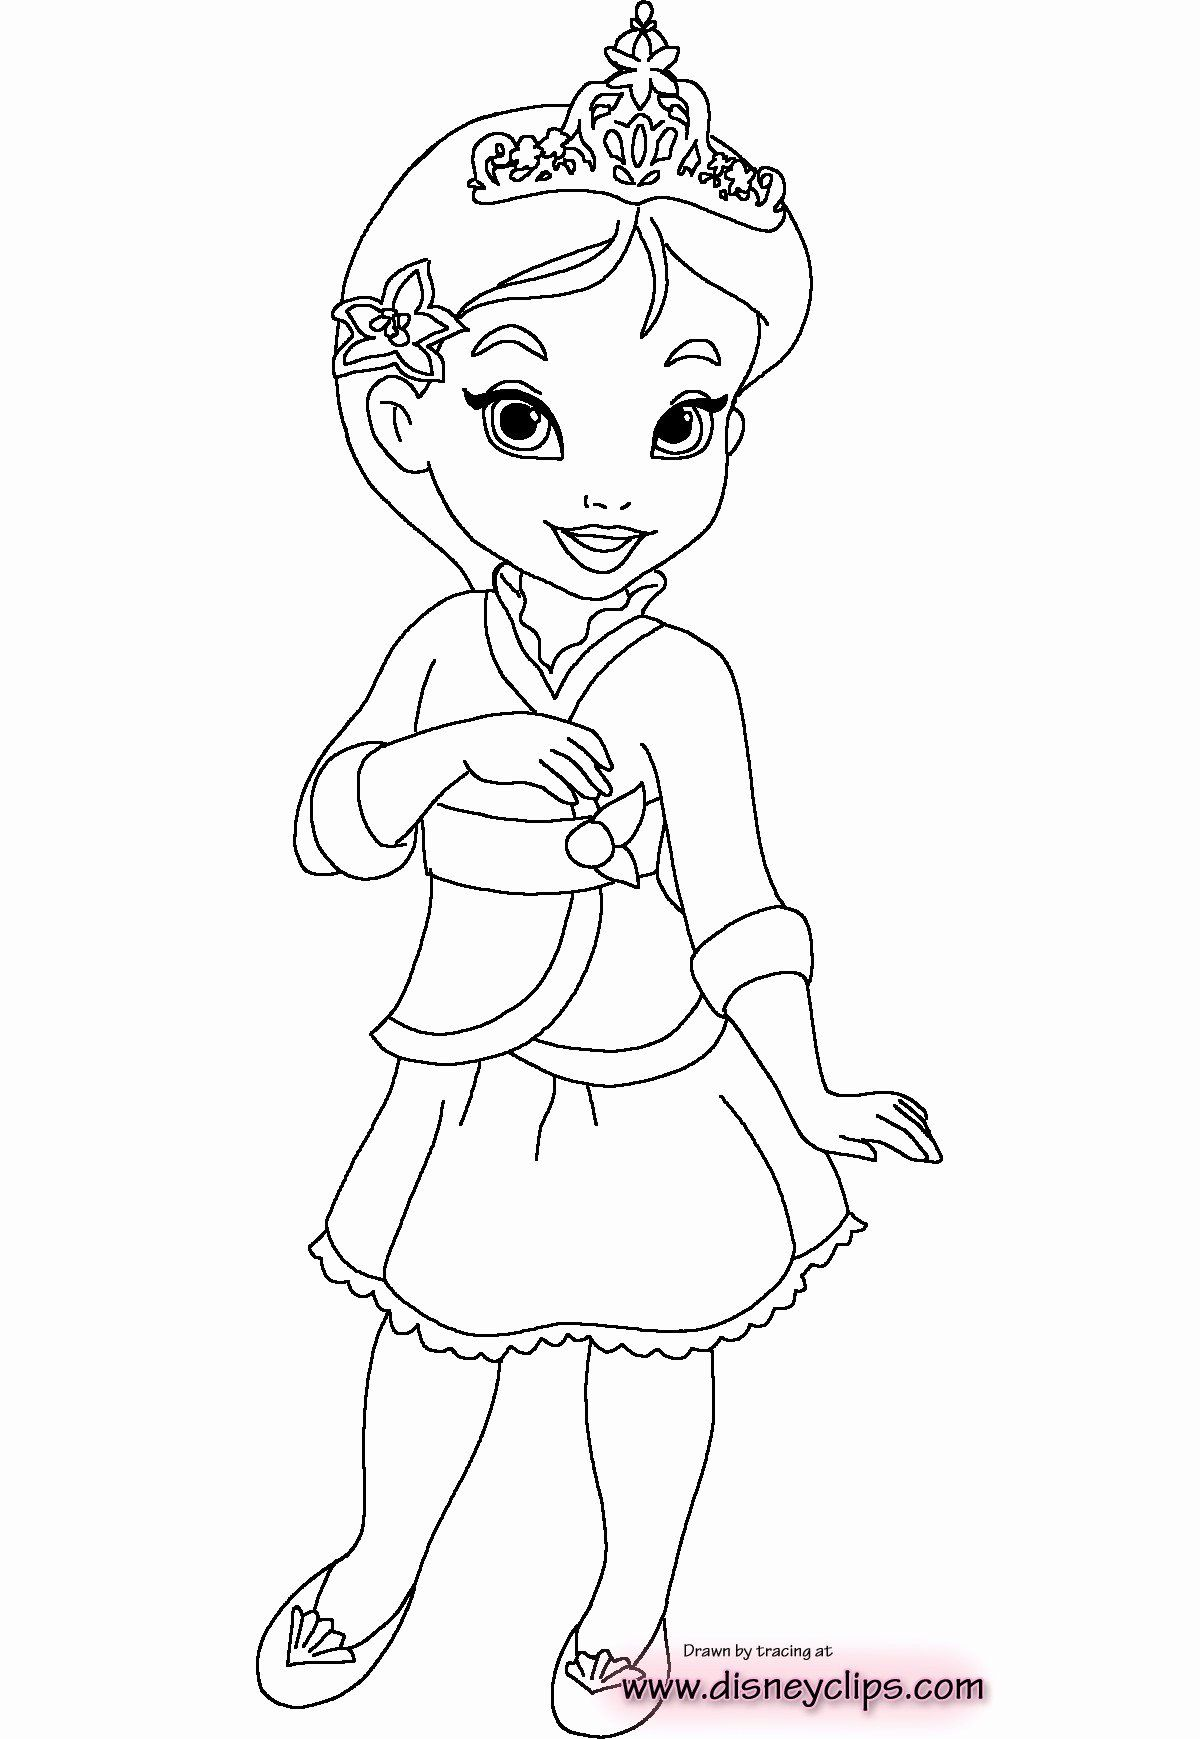 Disney Princess Jasmine Coloring Pages Luxury Disney Baby Princess Coloring Pages Kizi Games